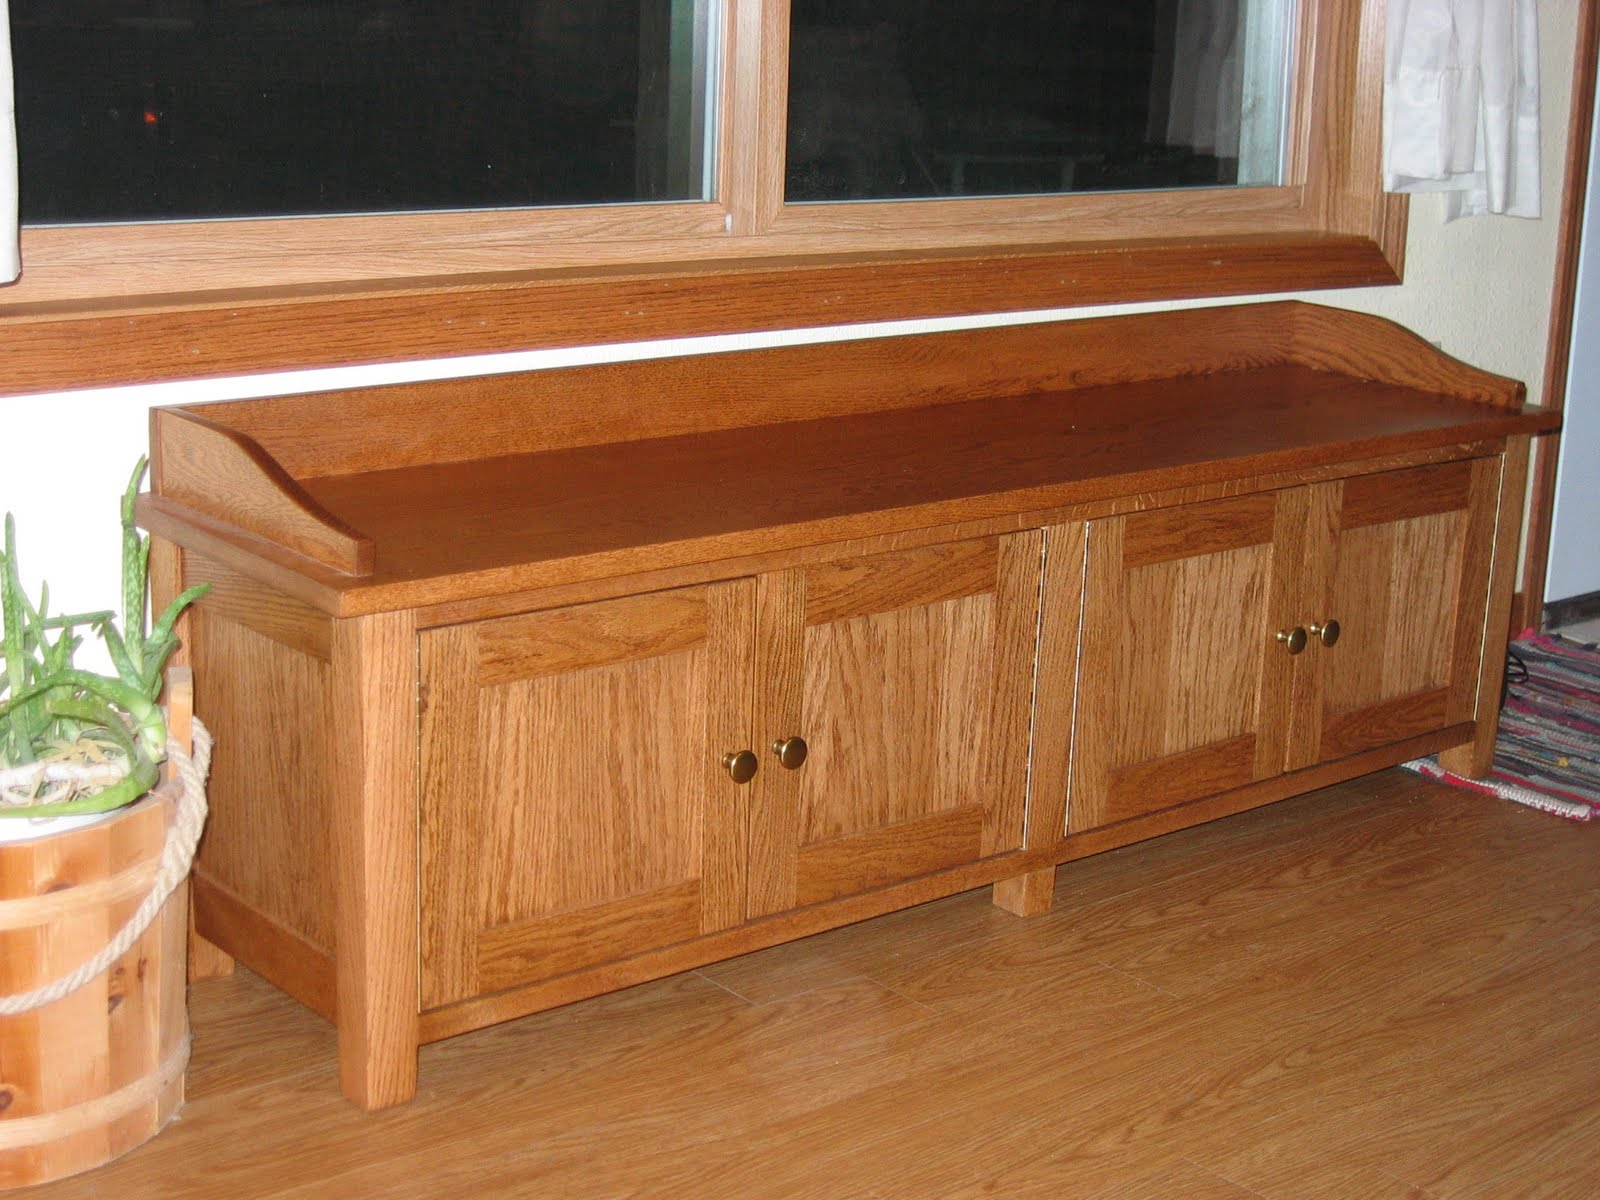 Tom kies woodworks custom made oak window bench Oak bench